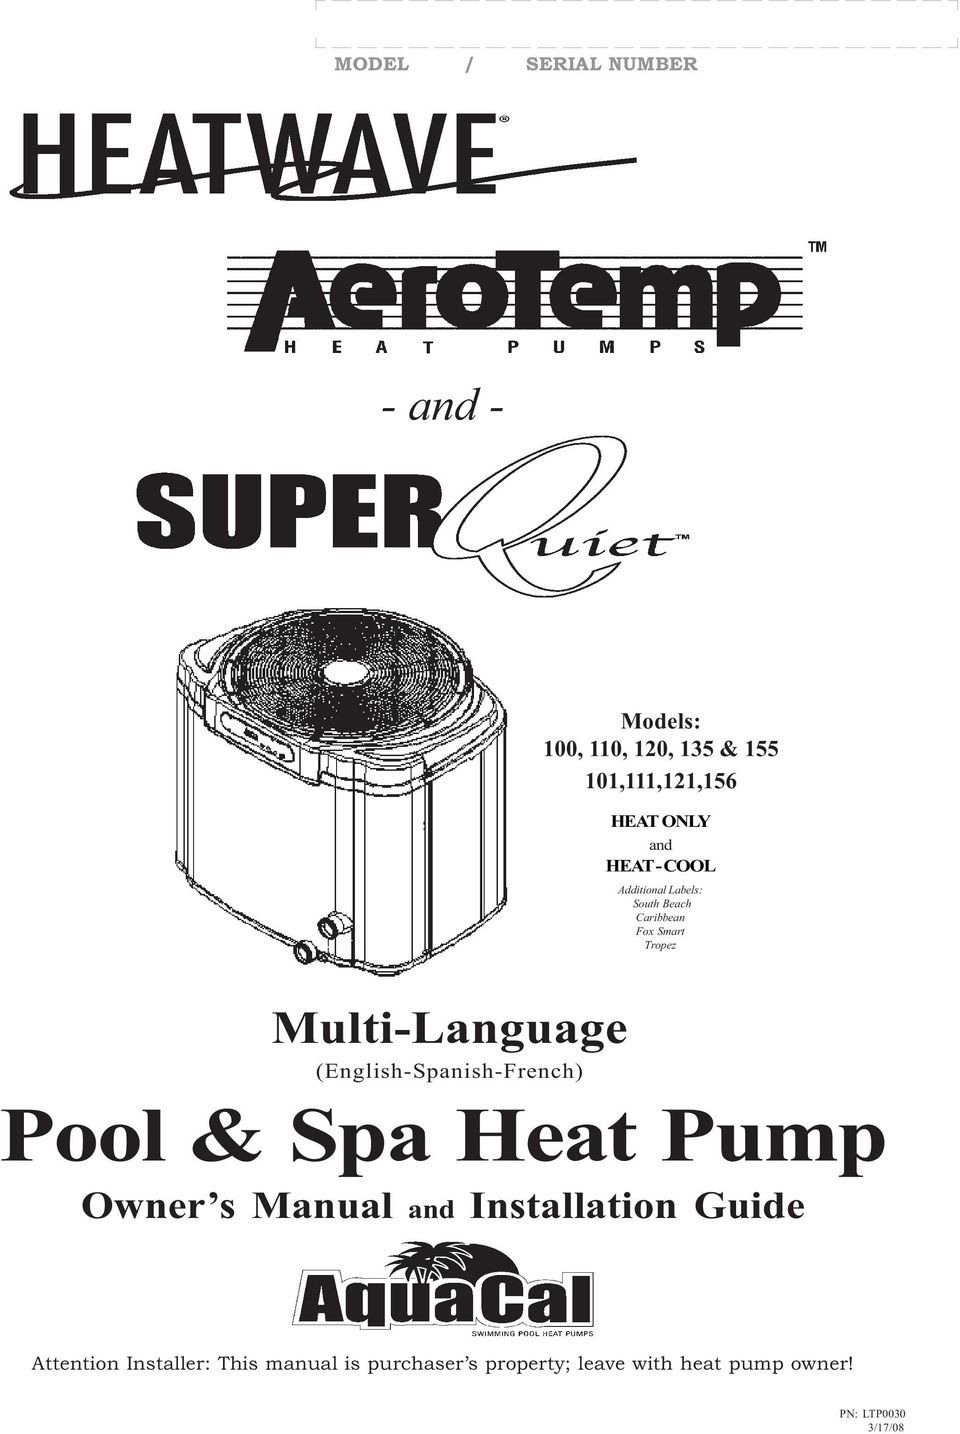 (English-Spanish-French) Pool & Spa Heat Pump Owner s Manual and Installation Guide